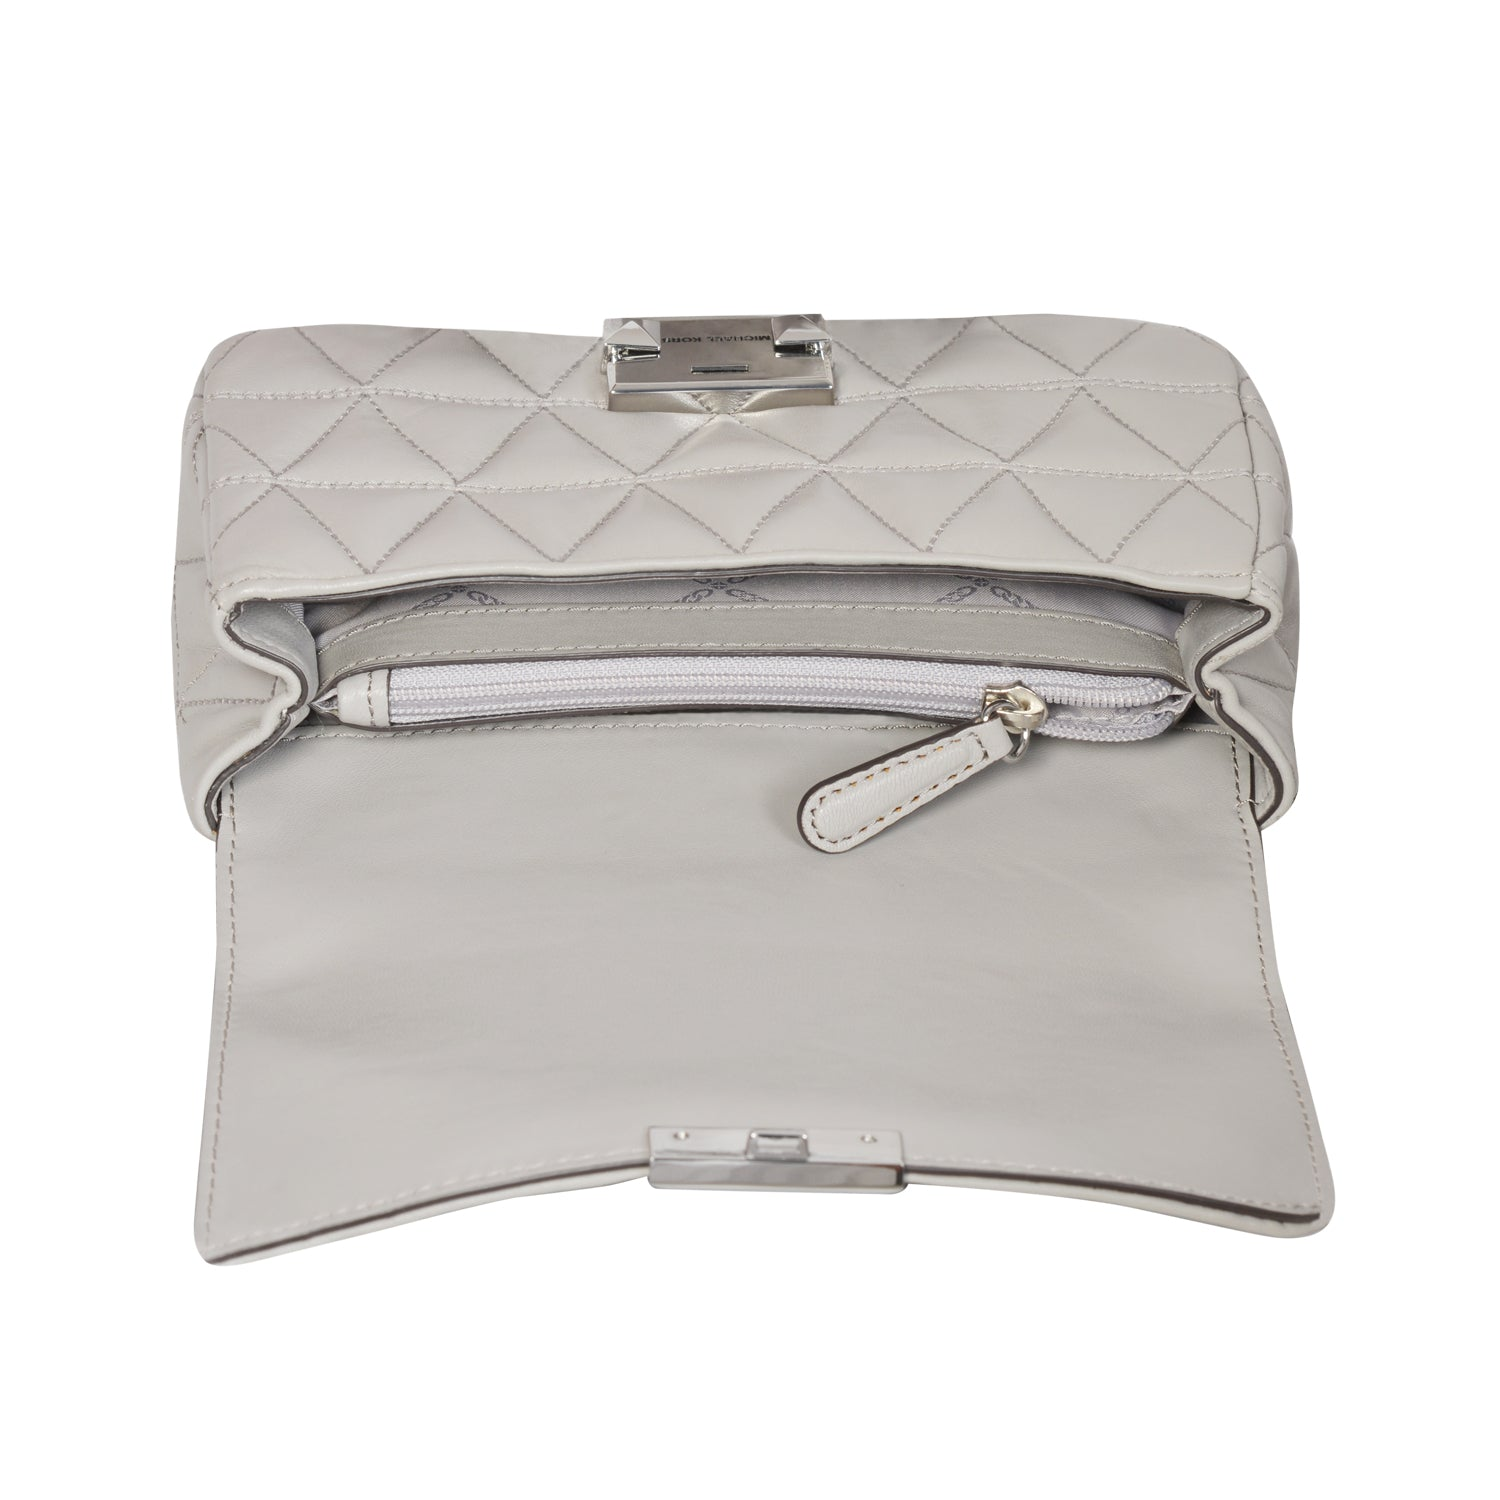 Michael Kors grey Sloan crossbody bag in sheepskin leather | Shop Luxury Shoulder Bag Online